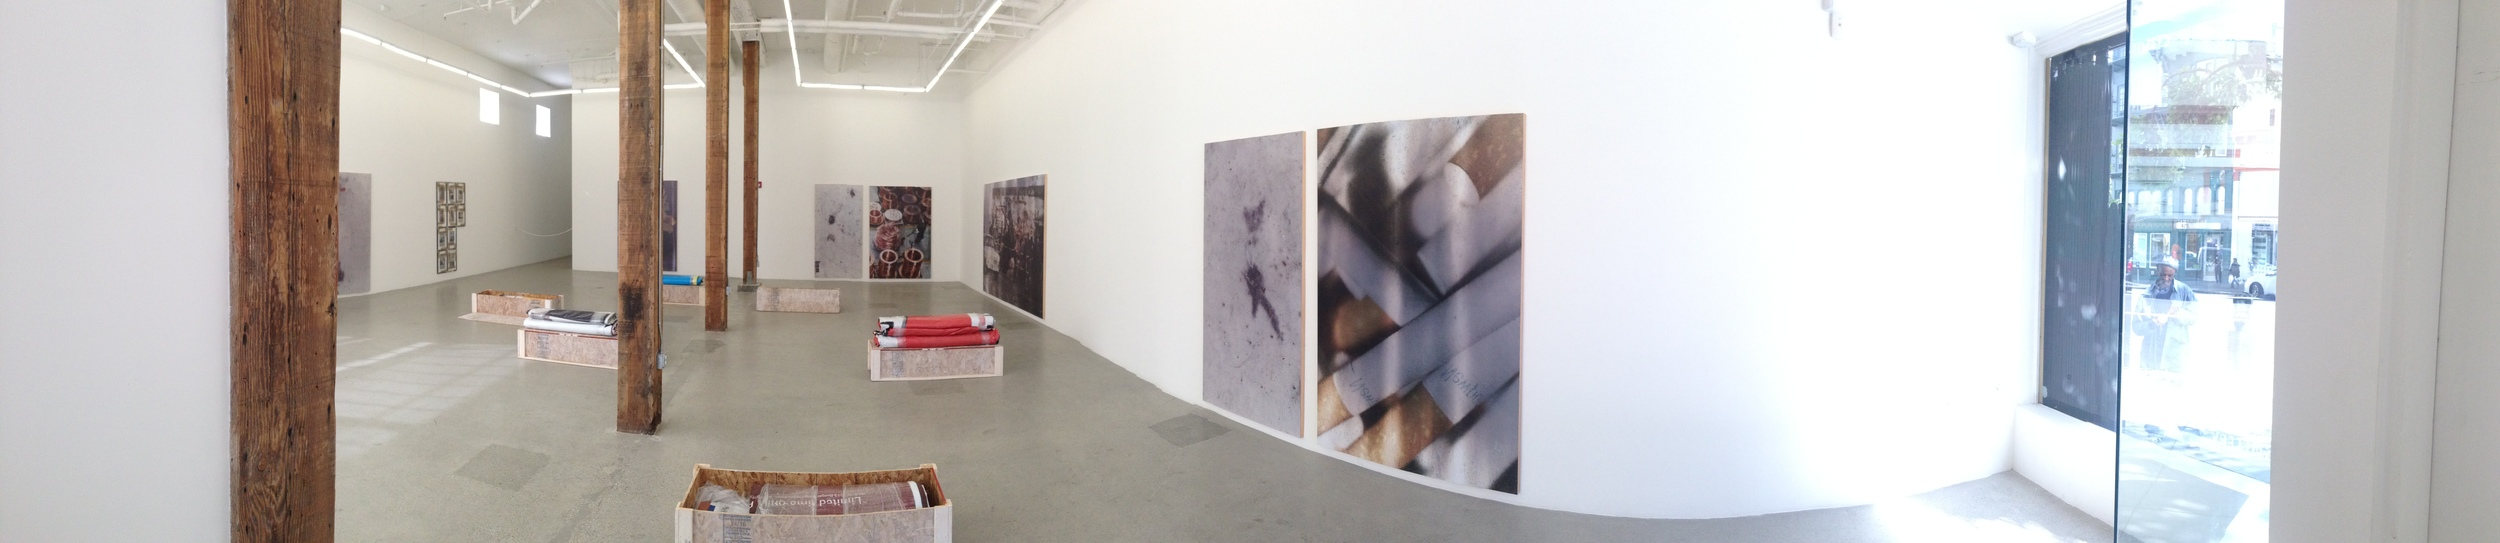 Exhibition Image,  Hugh Scott-Douglas: Promises to Pay in Solid Substance ,  Jessica Silverman Gallery, San Francisco. Photo Credit: Cincala Art Advisory